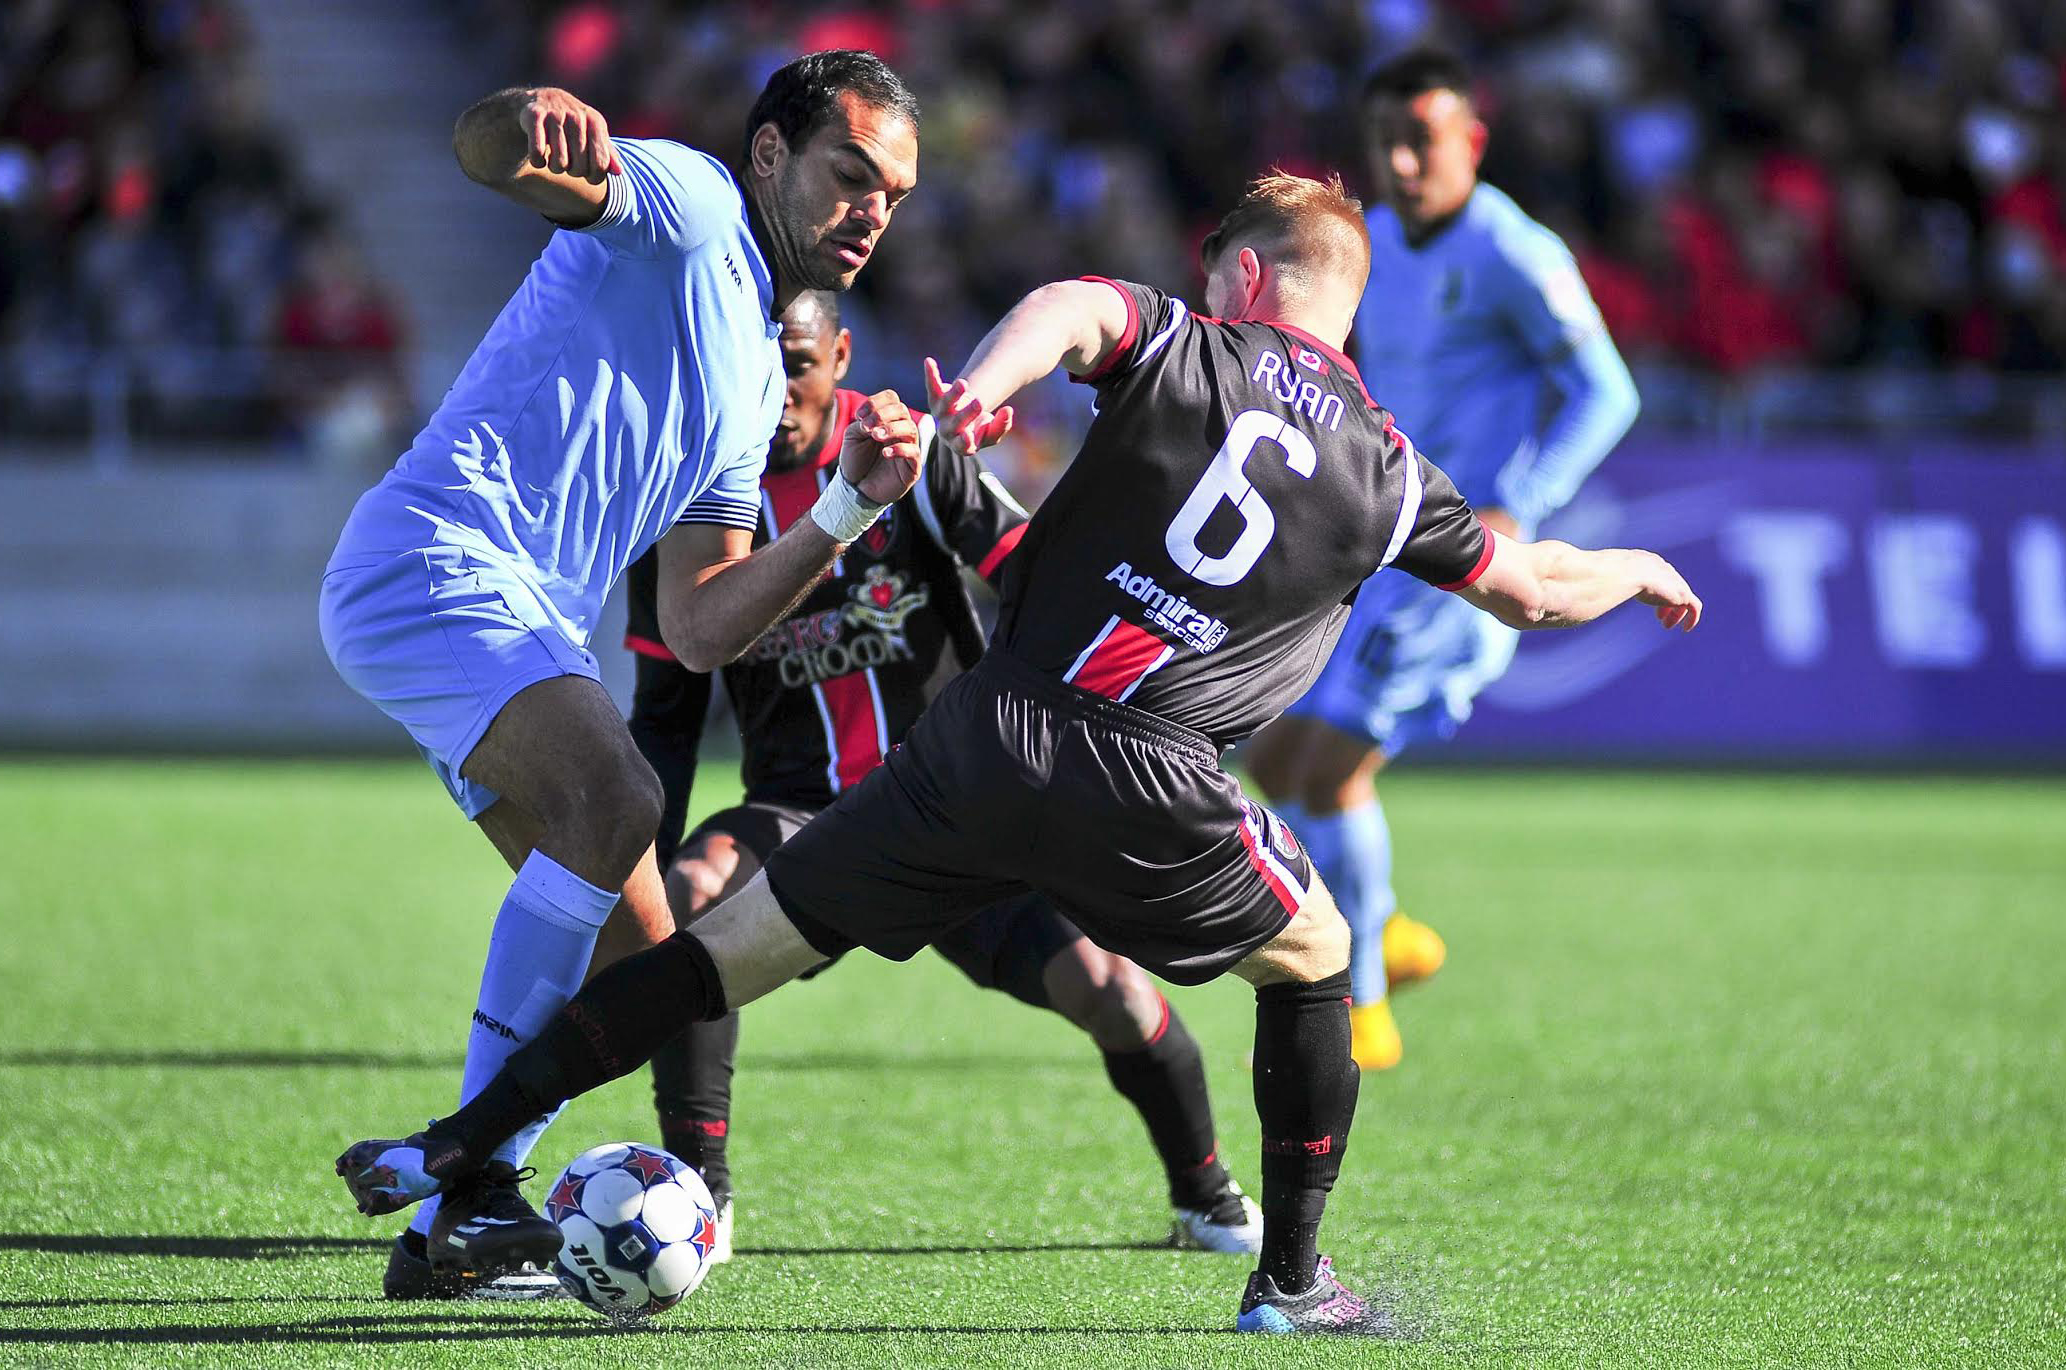 Richie Ryan battles for the ball during his days in Ottawa. Image